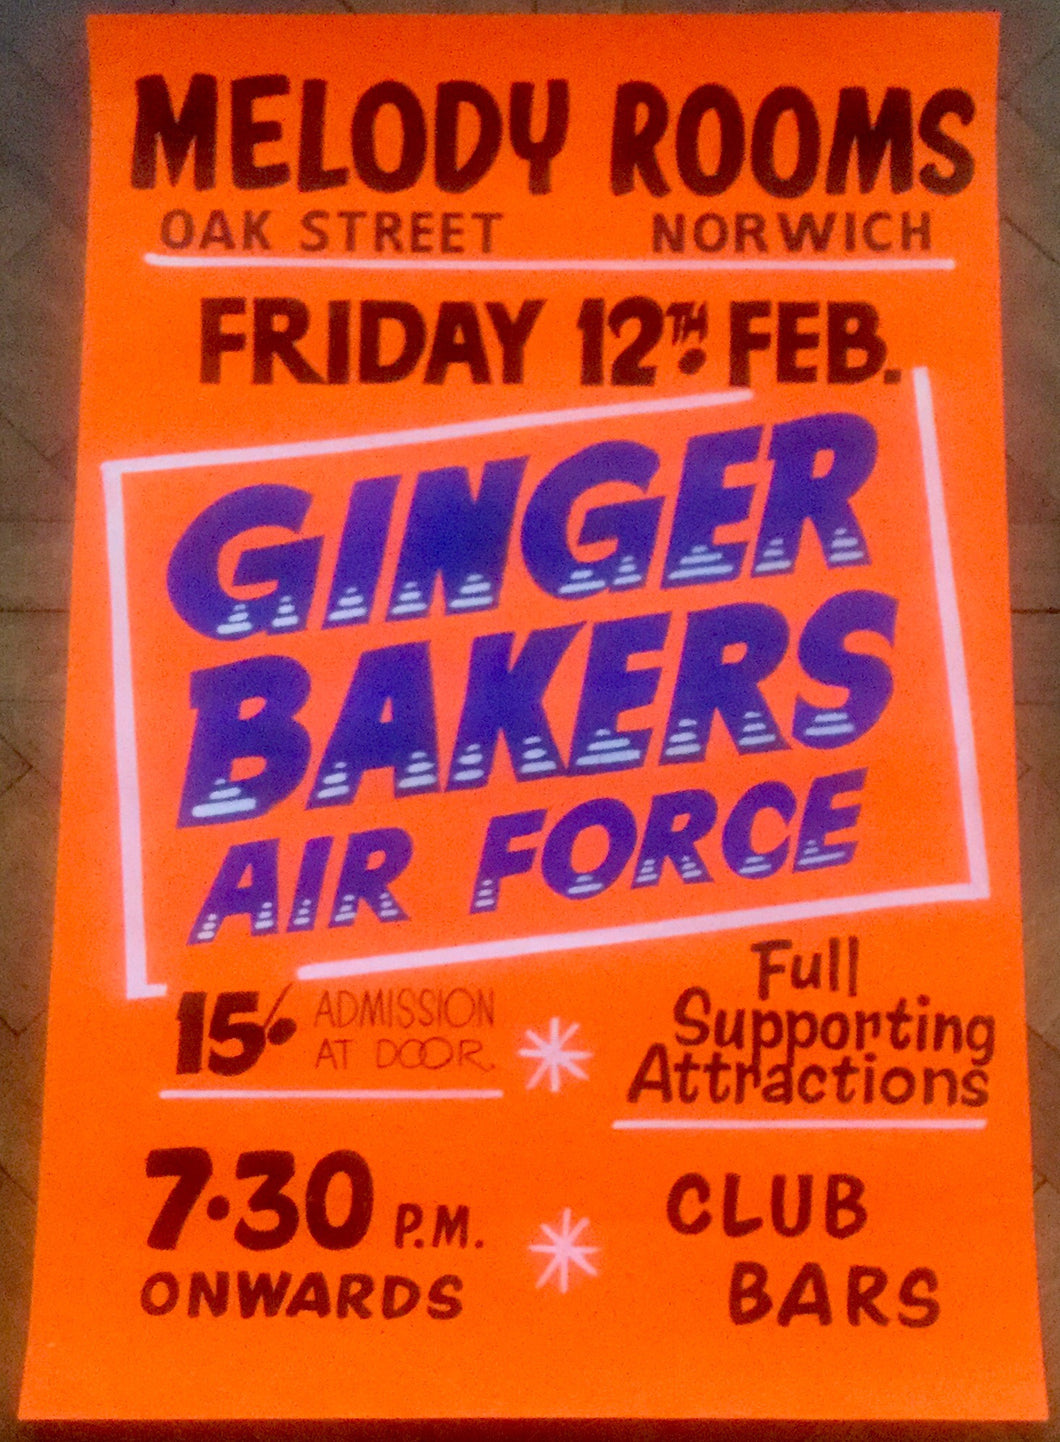 Ginger Baker's Airforce Original Concert Tour Gig Poster Melody Rooms Norwich 12th Feb 1971